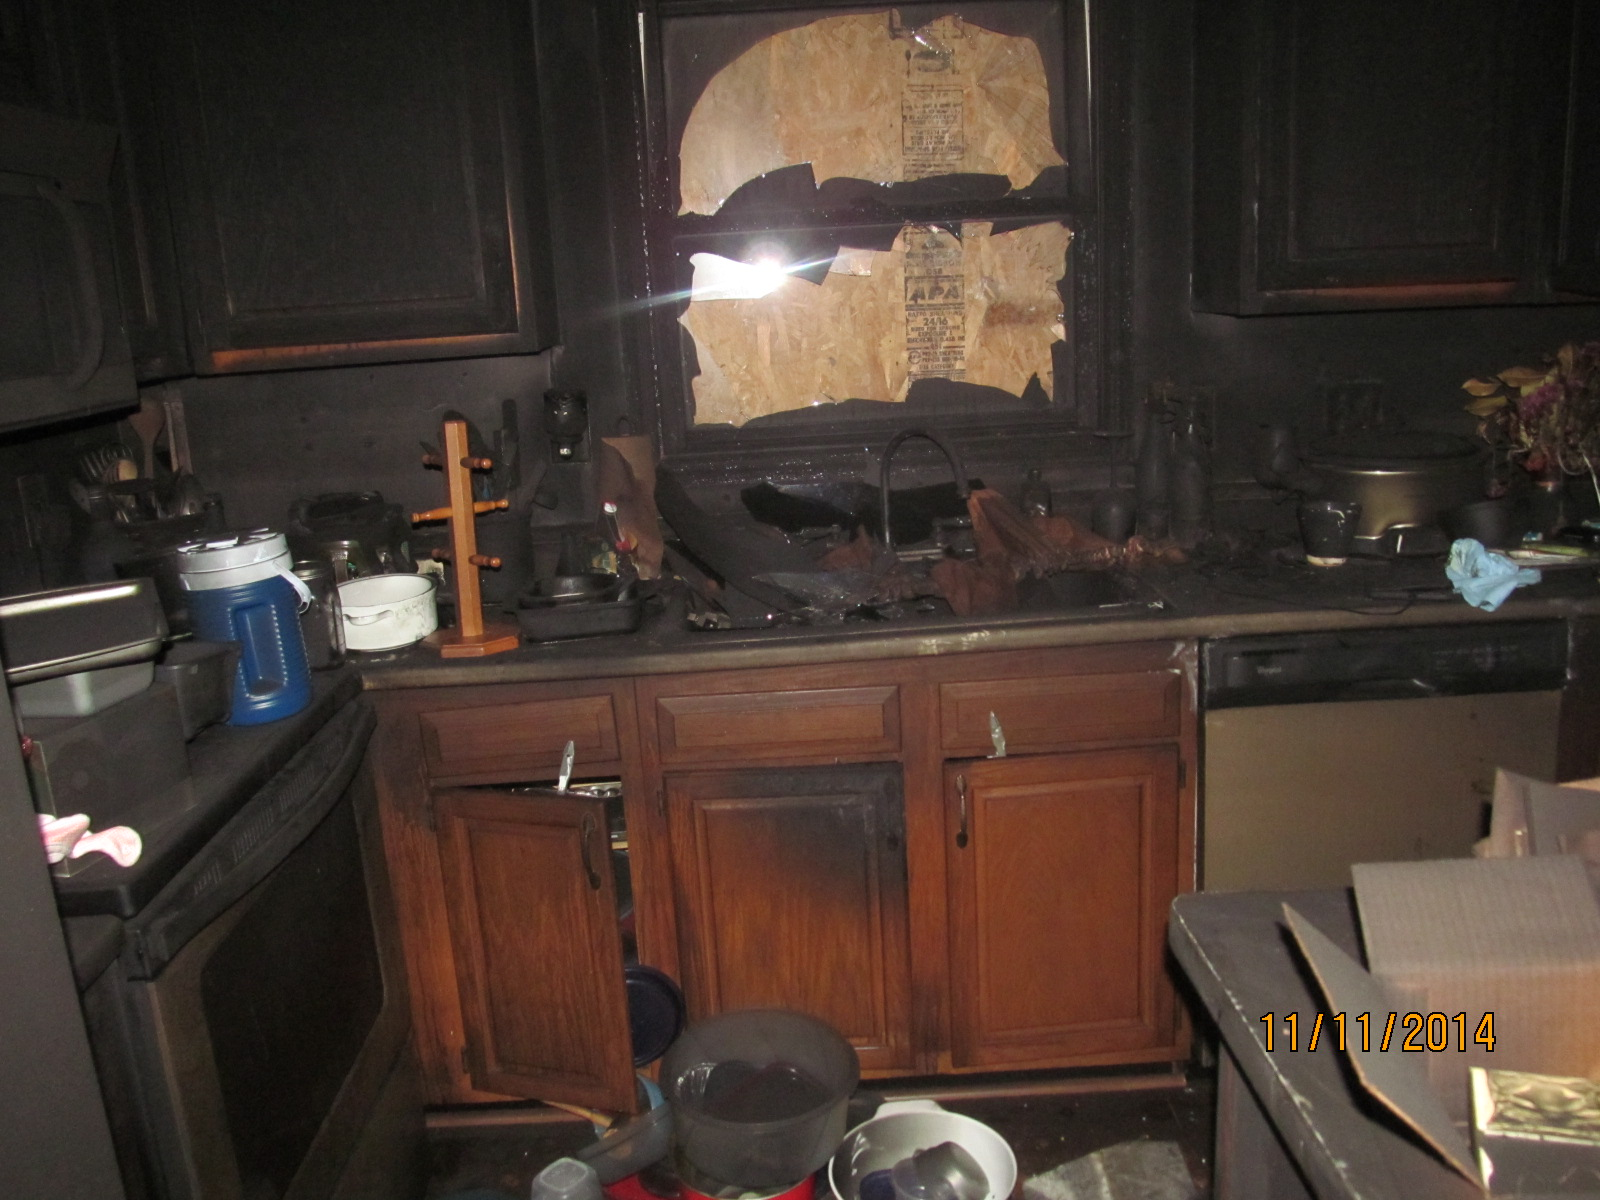 Kitchen Smoke and Fire Damage